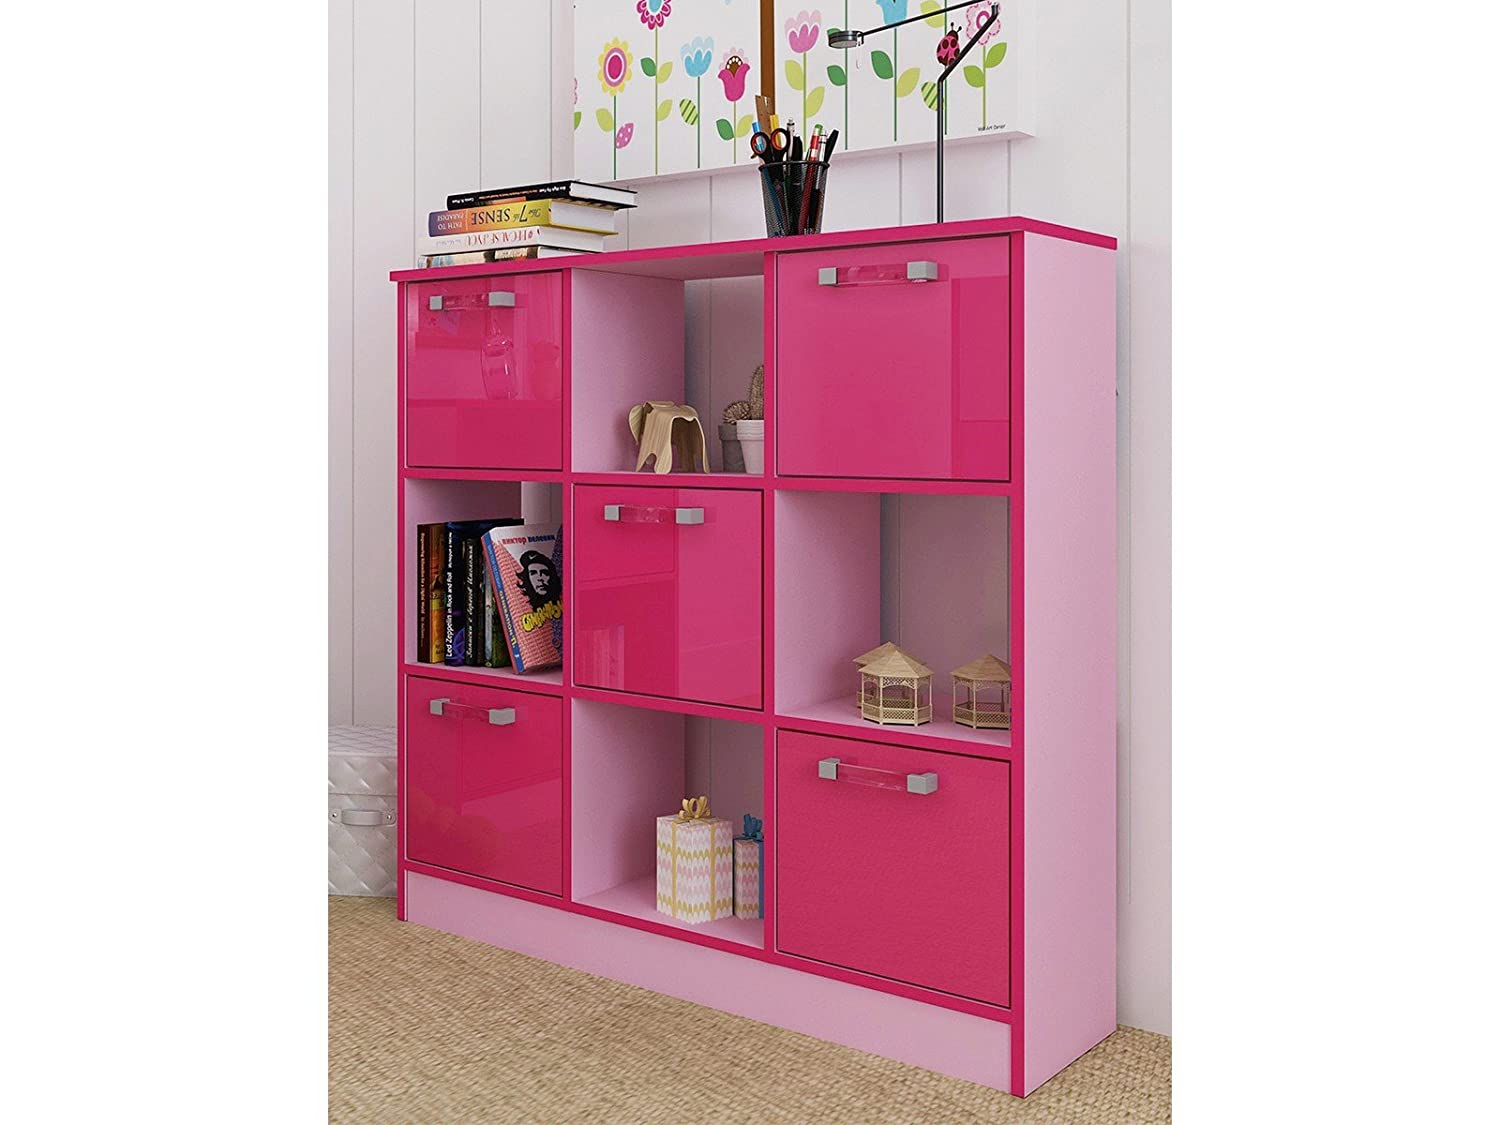 Right Deals UK Ottawa Caspian Childrens Bedroom Storage Shelving Cube  Cupboards   Blue Pink Two Tone (Pink, 3x3): Amazon.co.uk: Kitchen U0026 Home